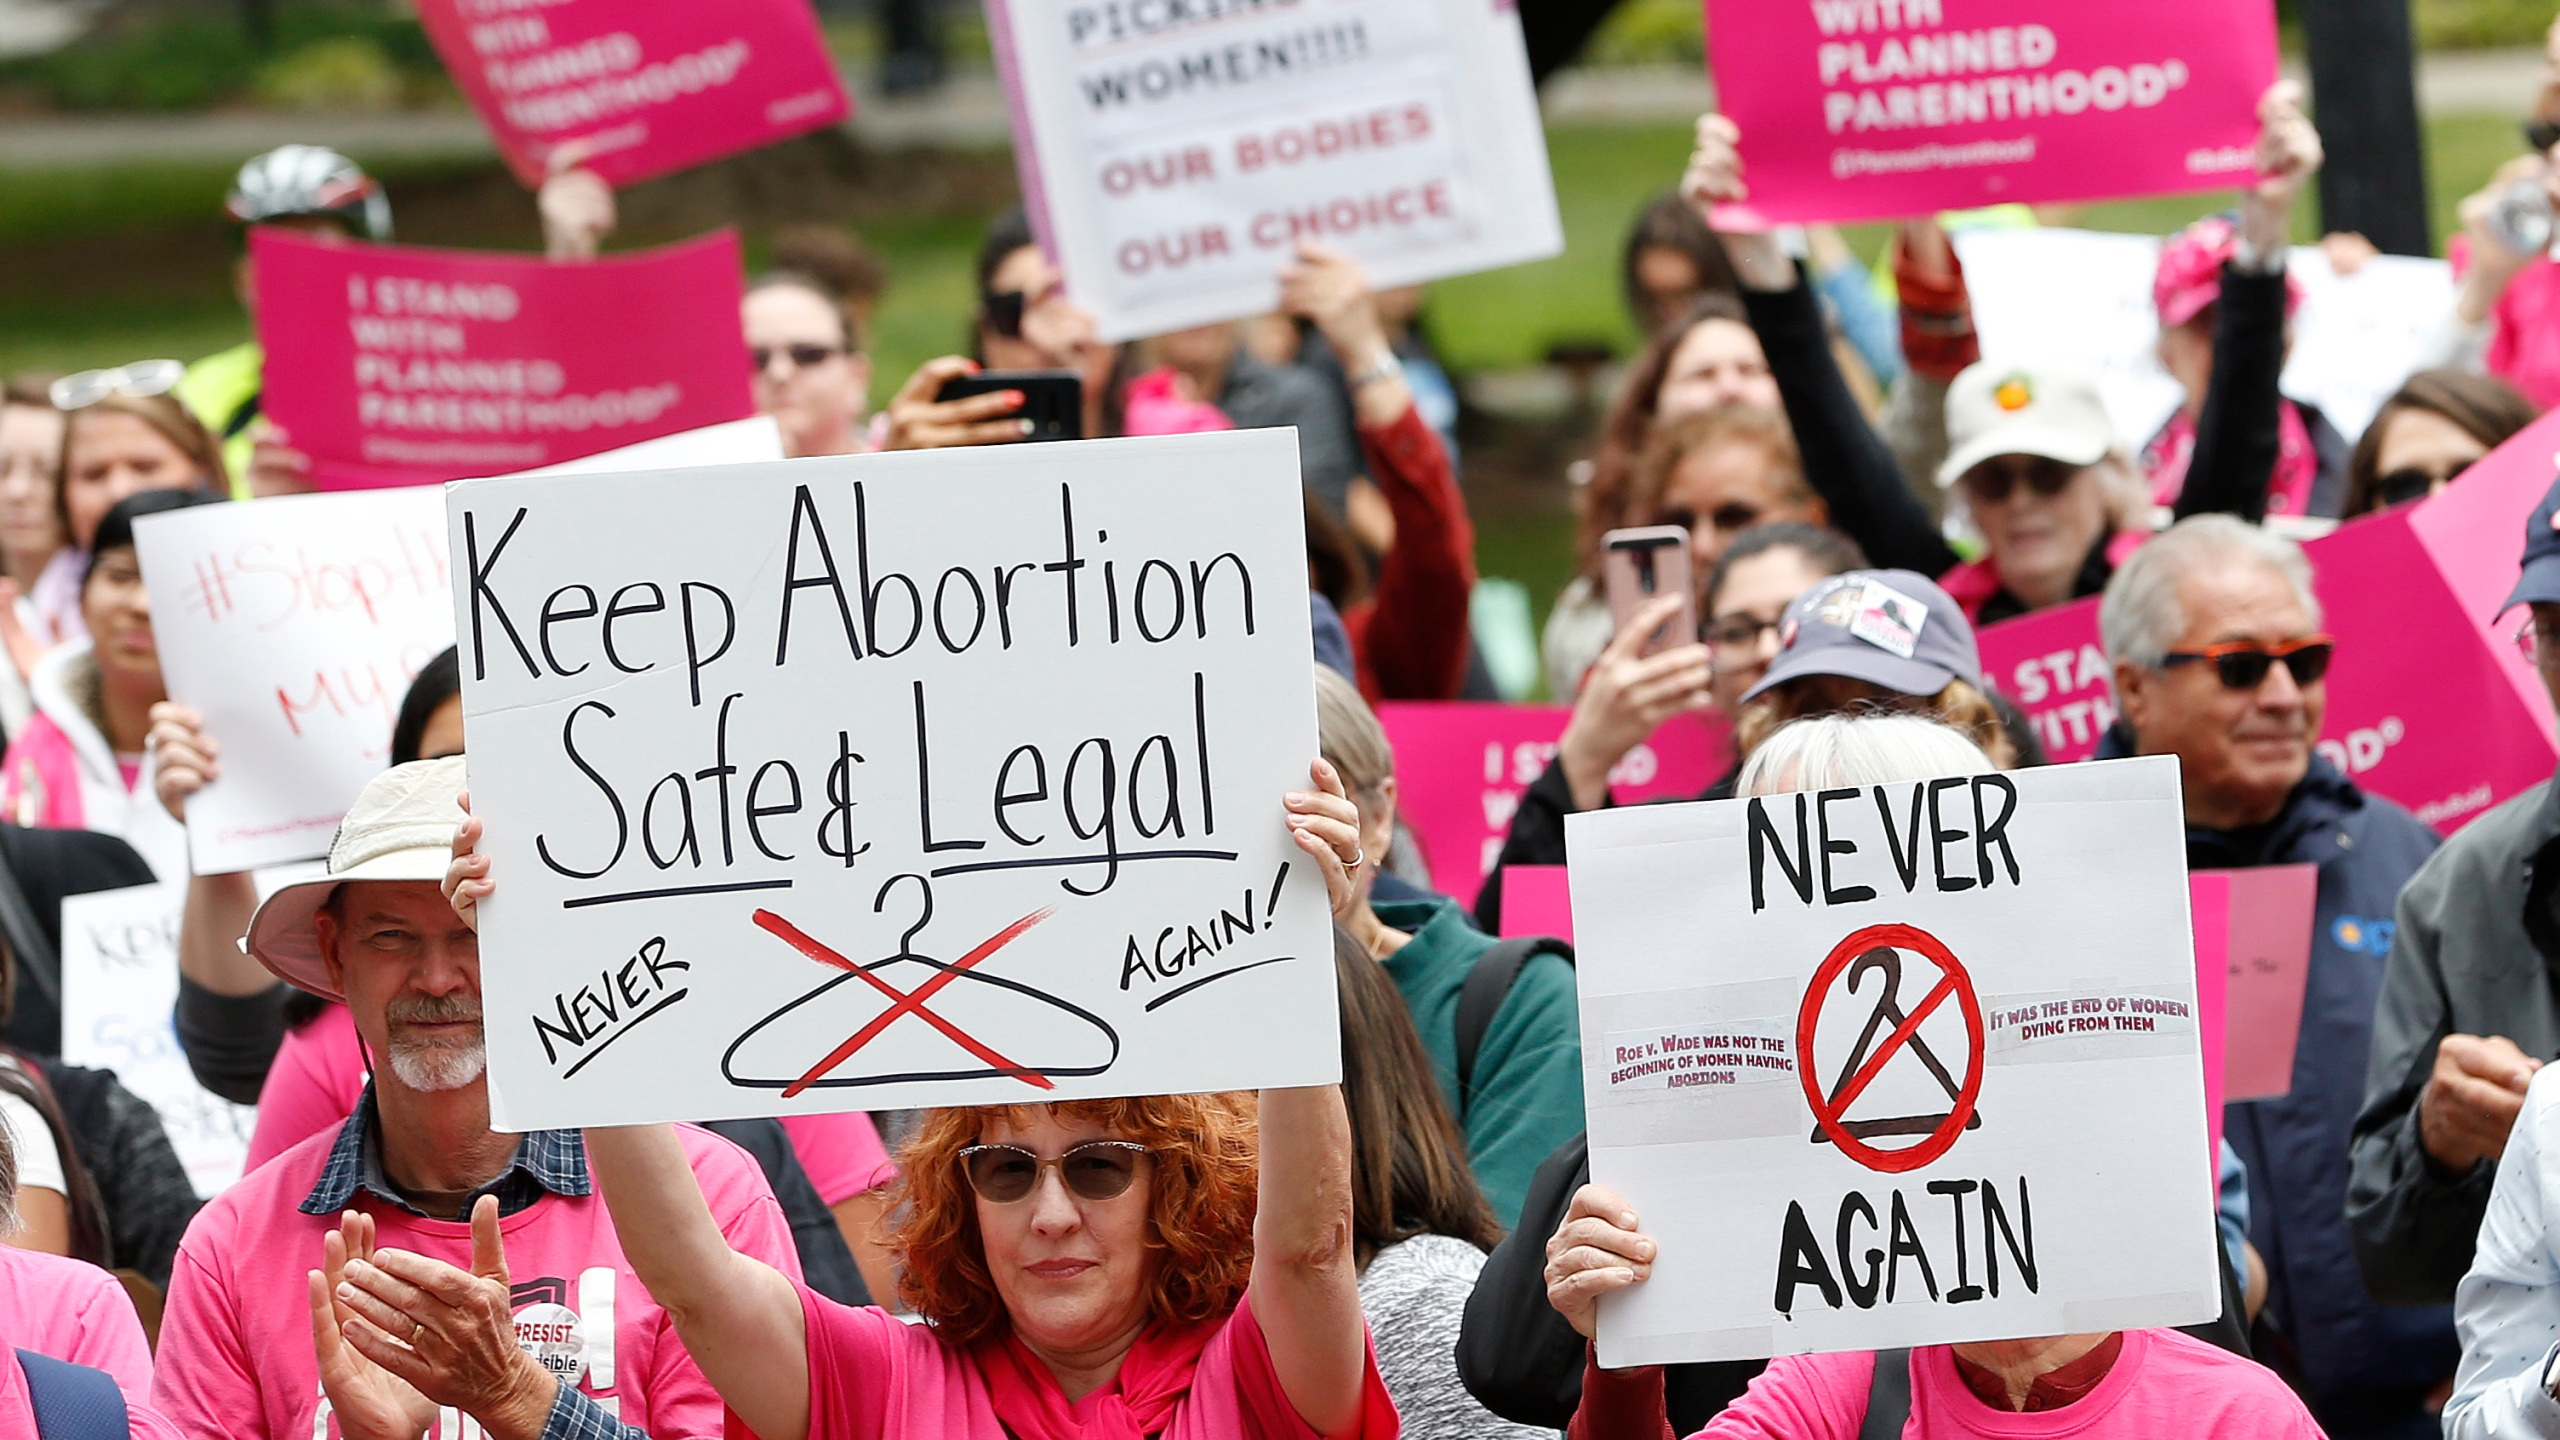 Abortion_Protests_California_96038-159532.jpg63075863